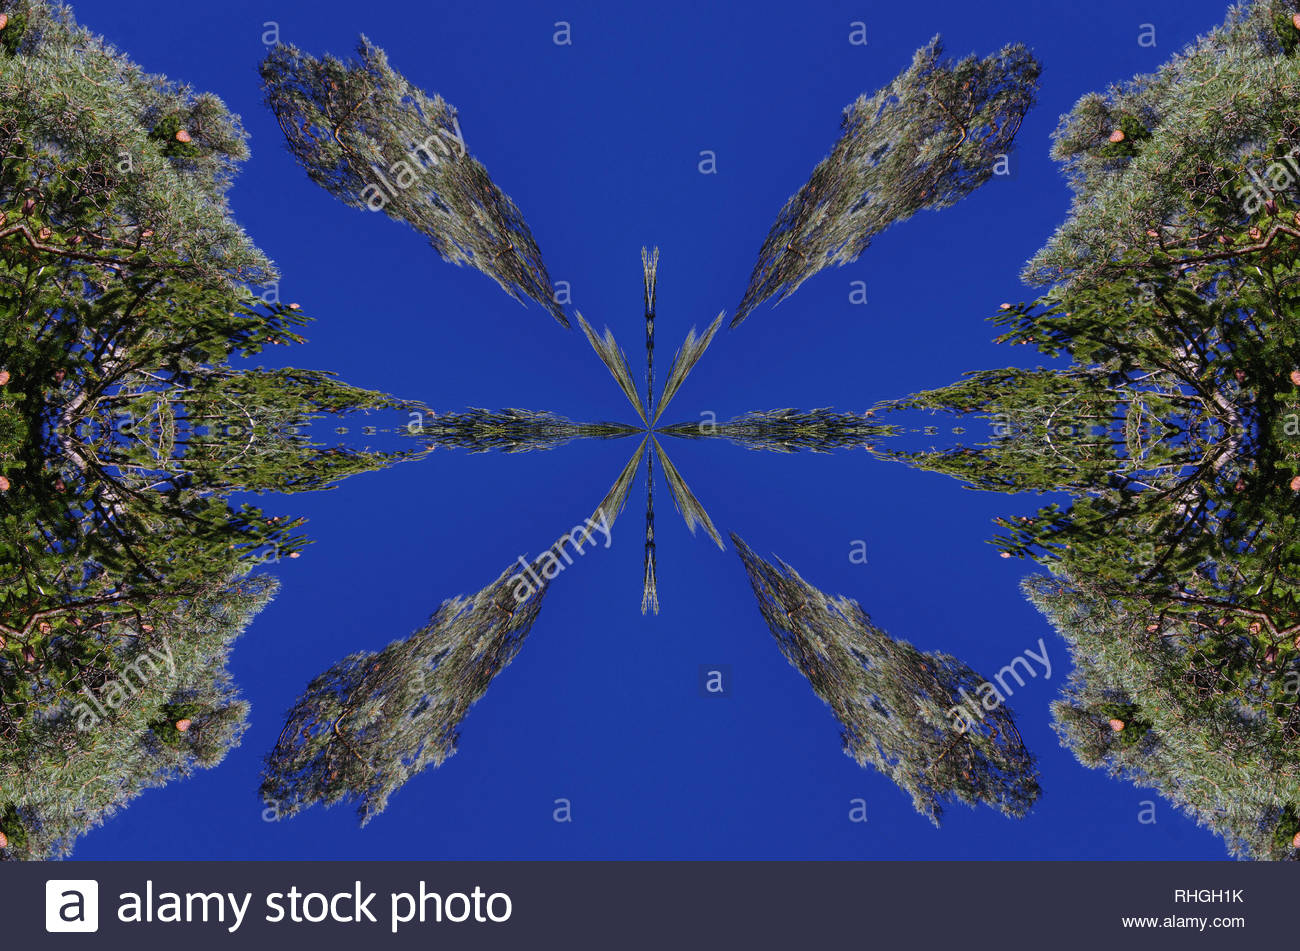 Forests In The Kaleidoscope Changed And Transformed The Objects